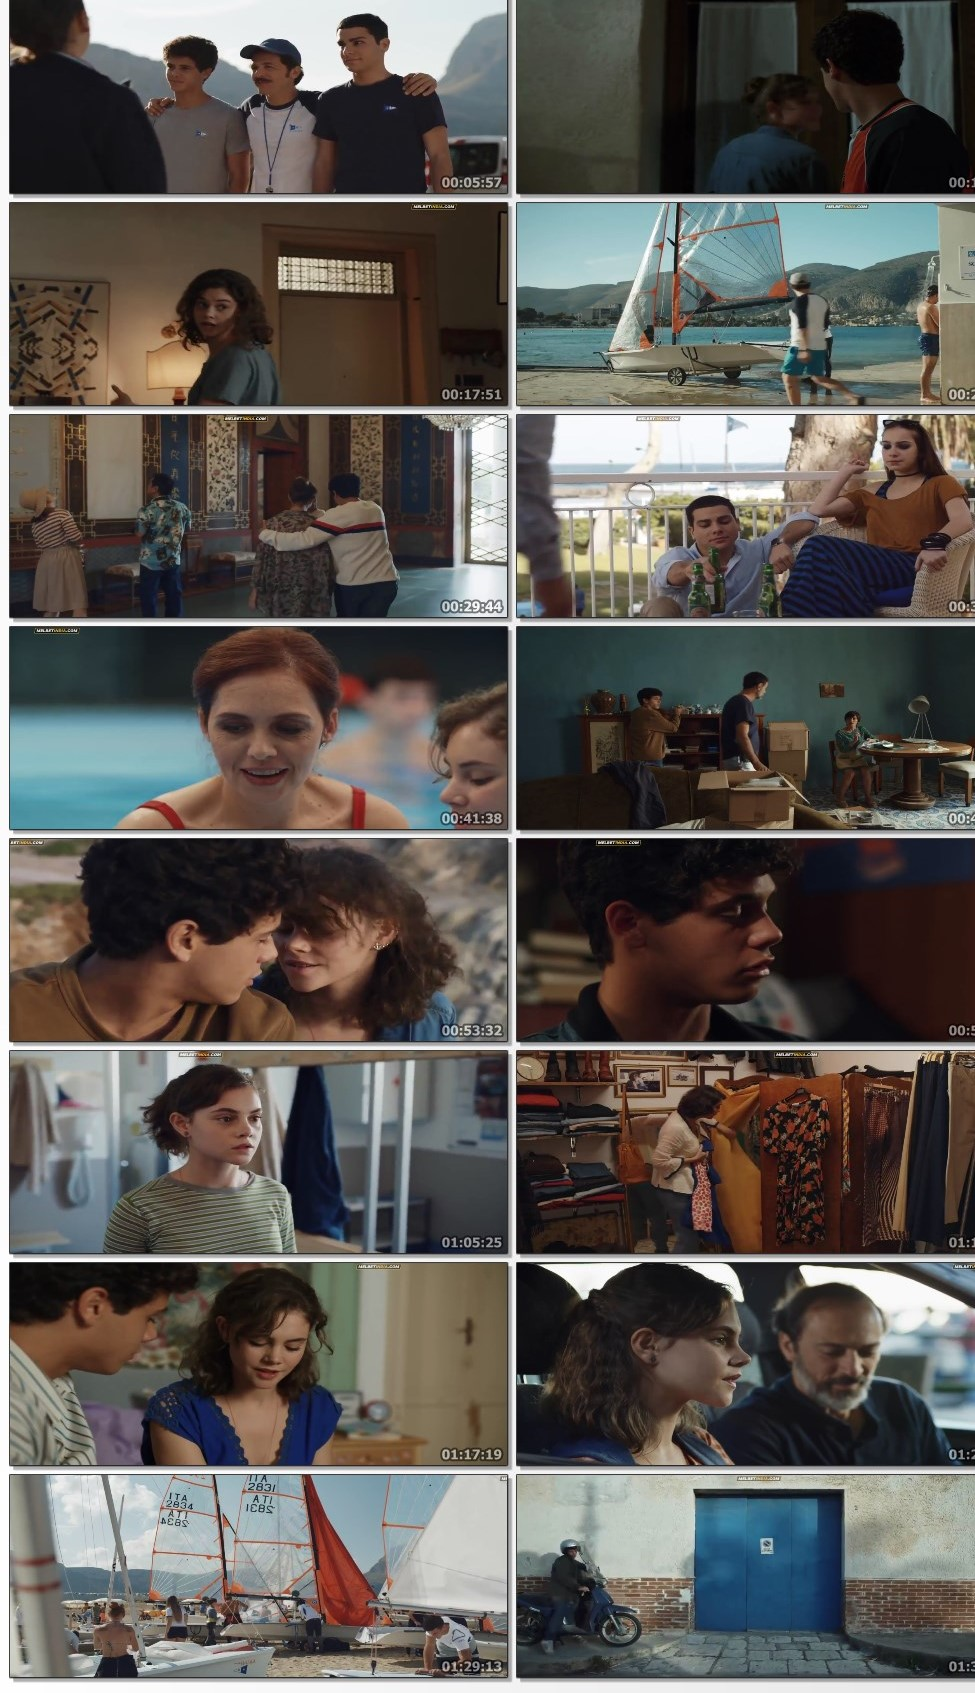 Caught-by-a-Wave-2021-www-9kmovies-work-HQ-Hindi-Dubbed-720p-HDRip-700-MB-mkv-thumbs06e78251b27830d8